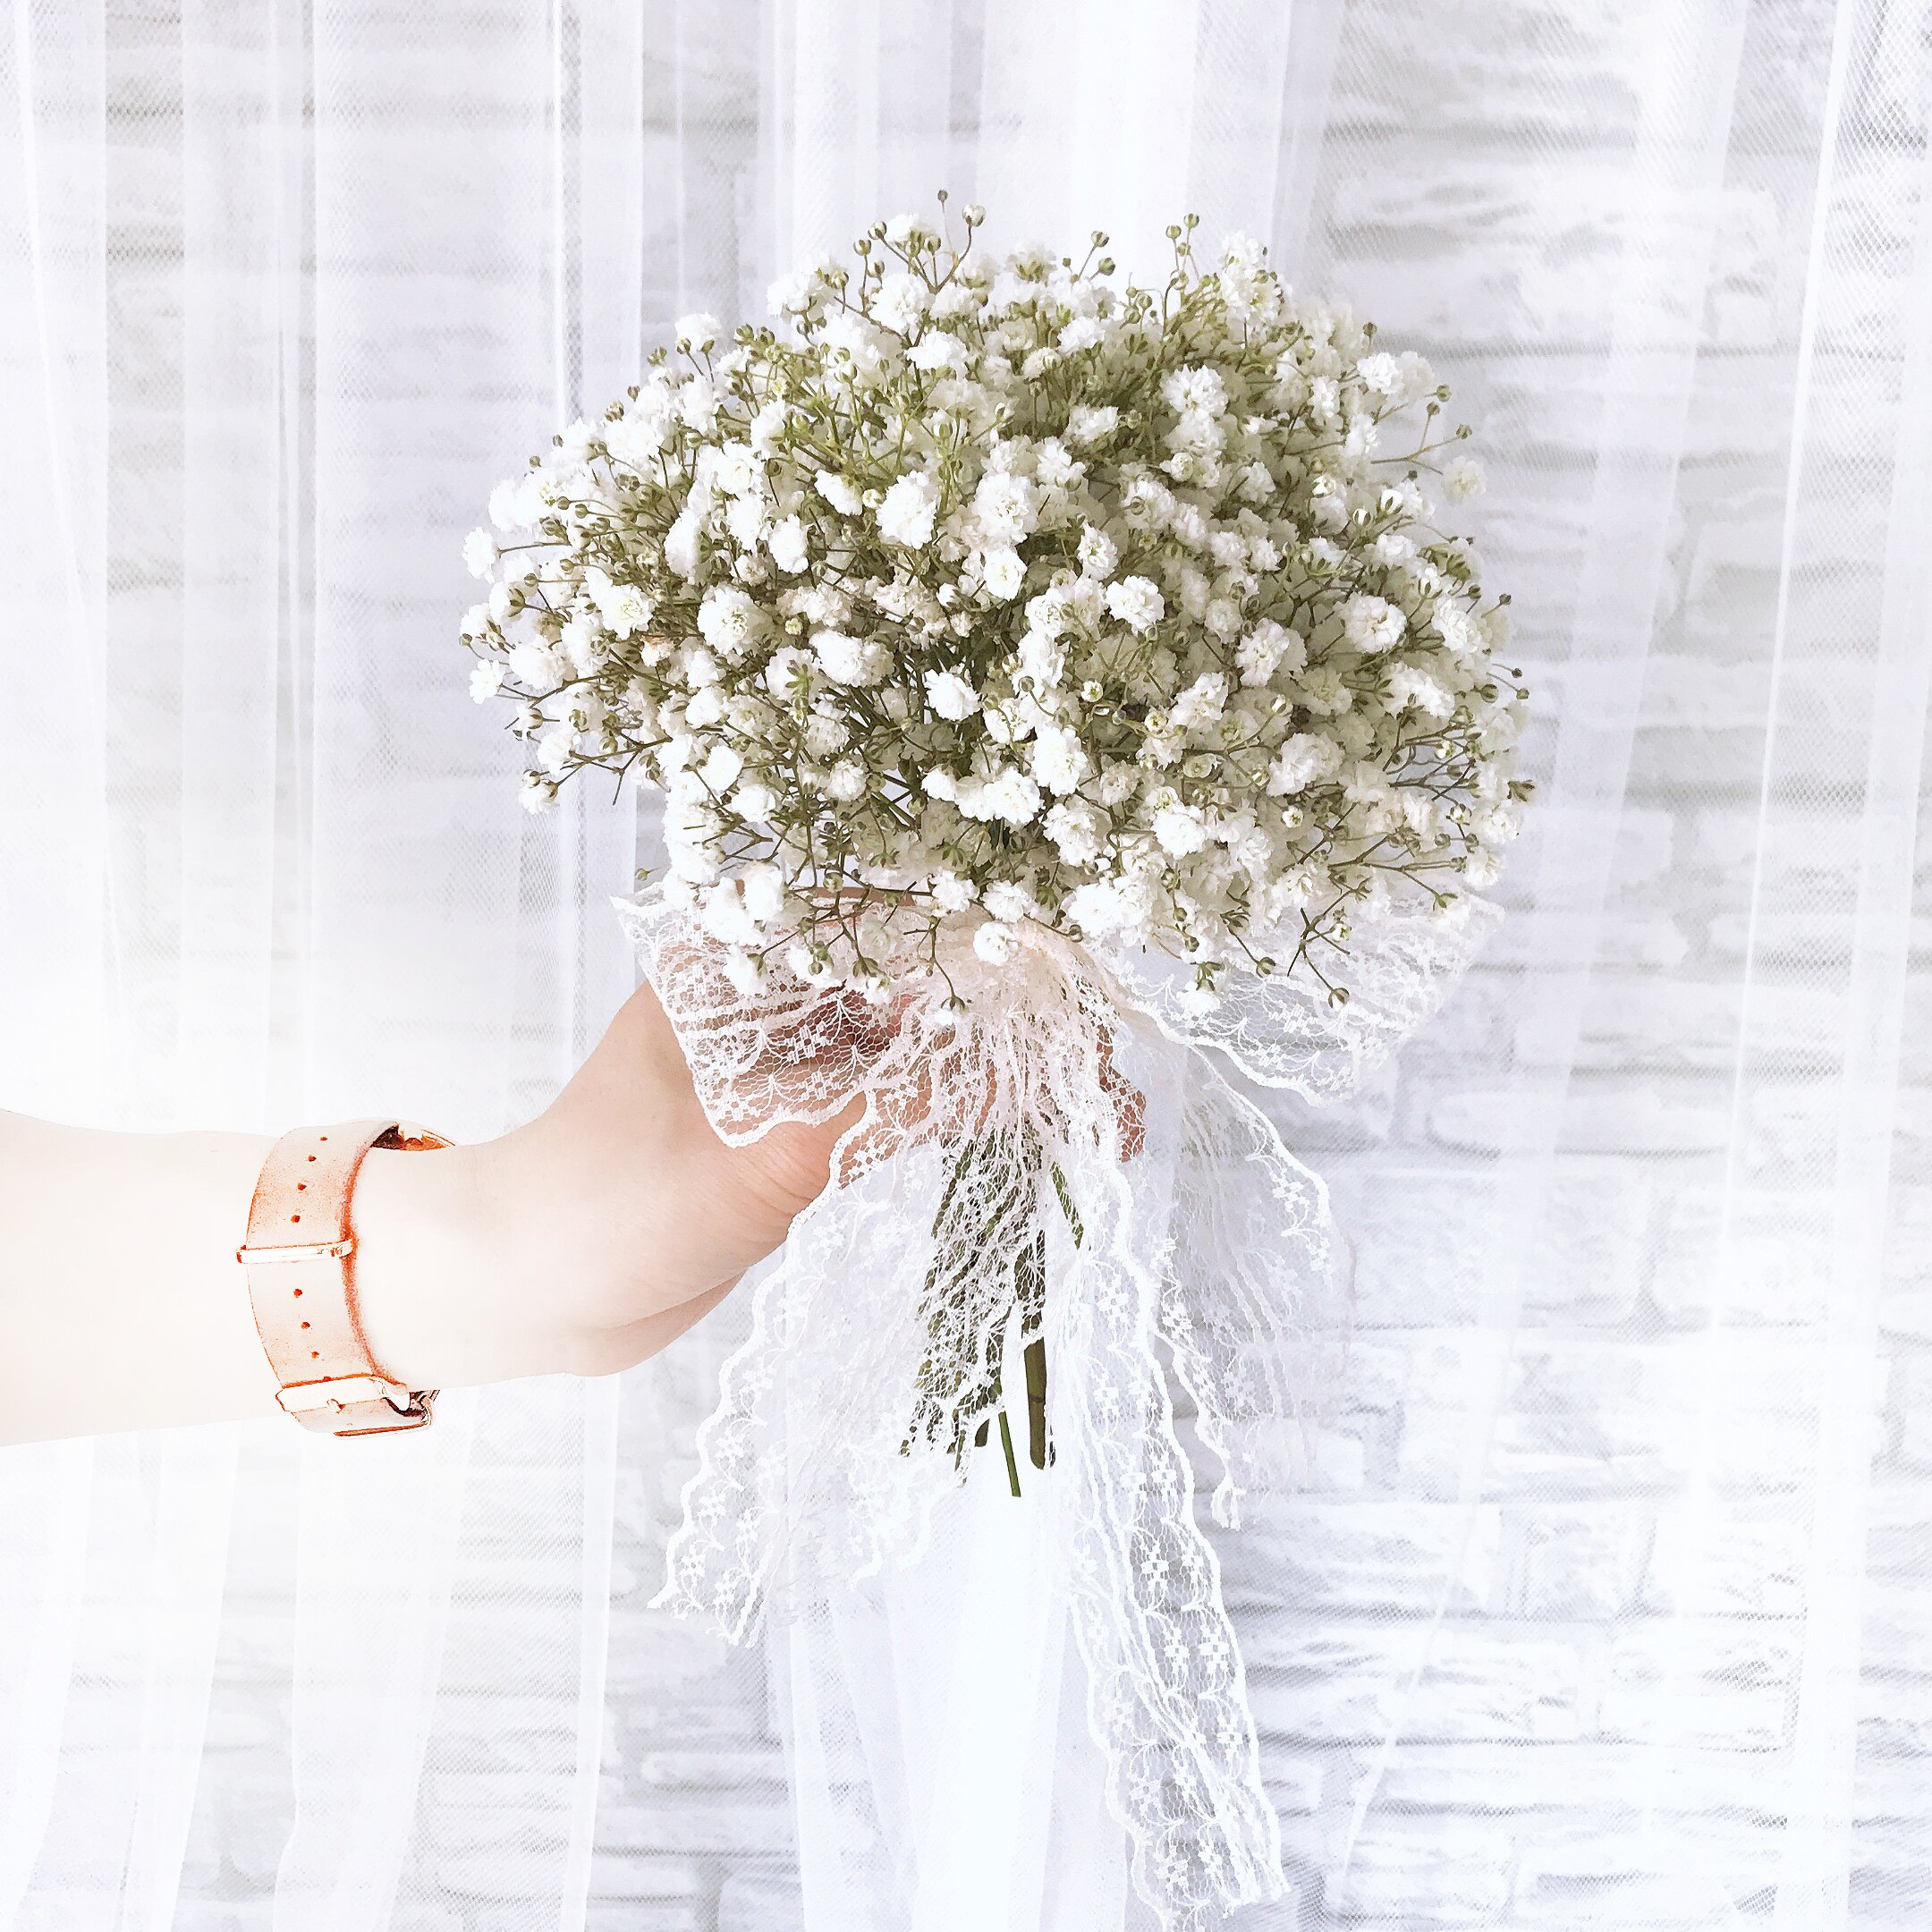 Beautiful in White - Freeland Floral 自由花苑